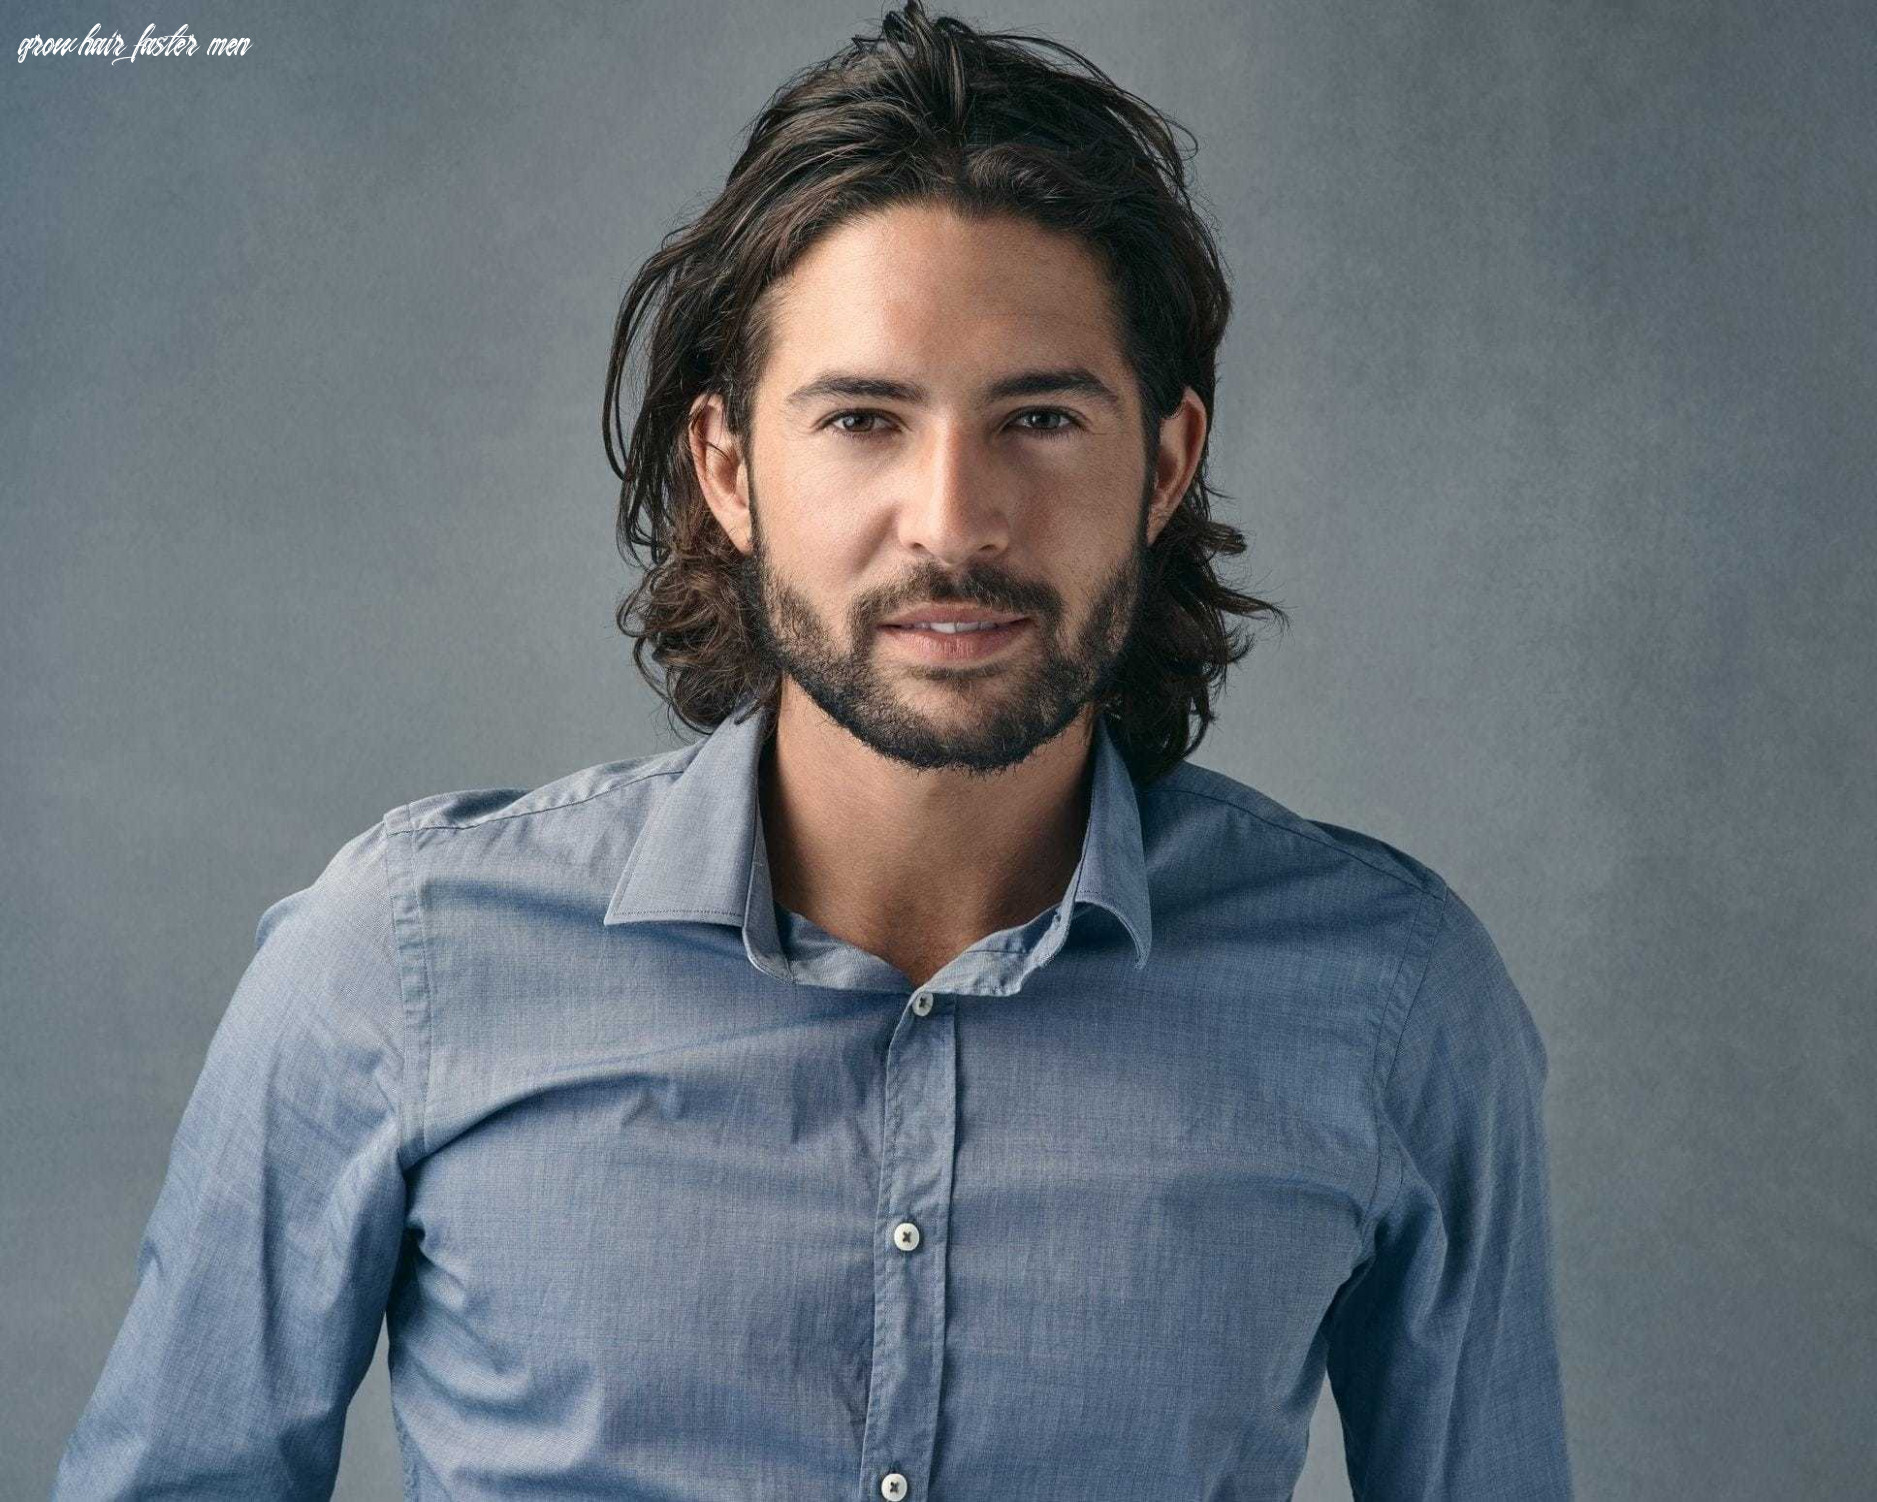 How to Grow Hair Faster for Men: Is It Possible? | All Things Hair US